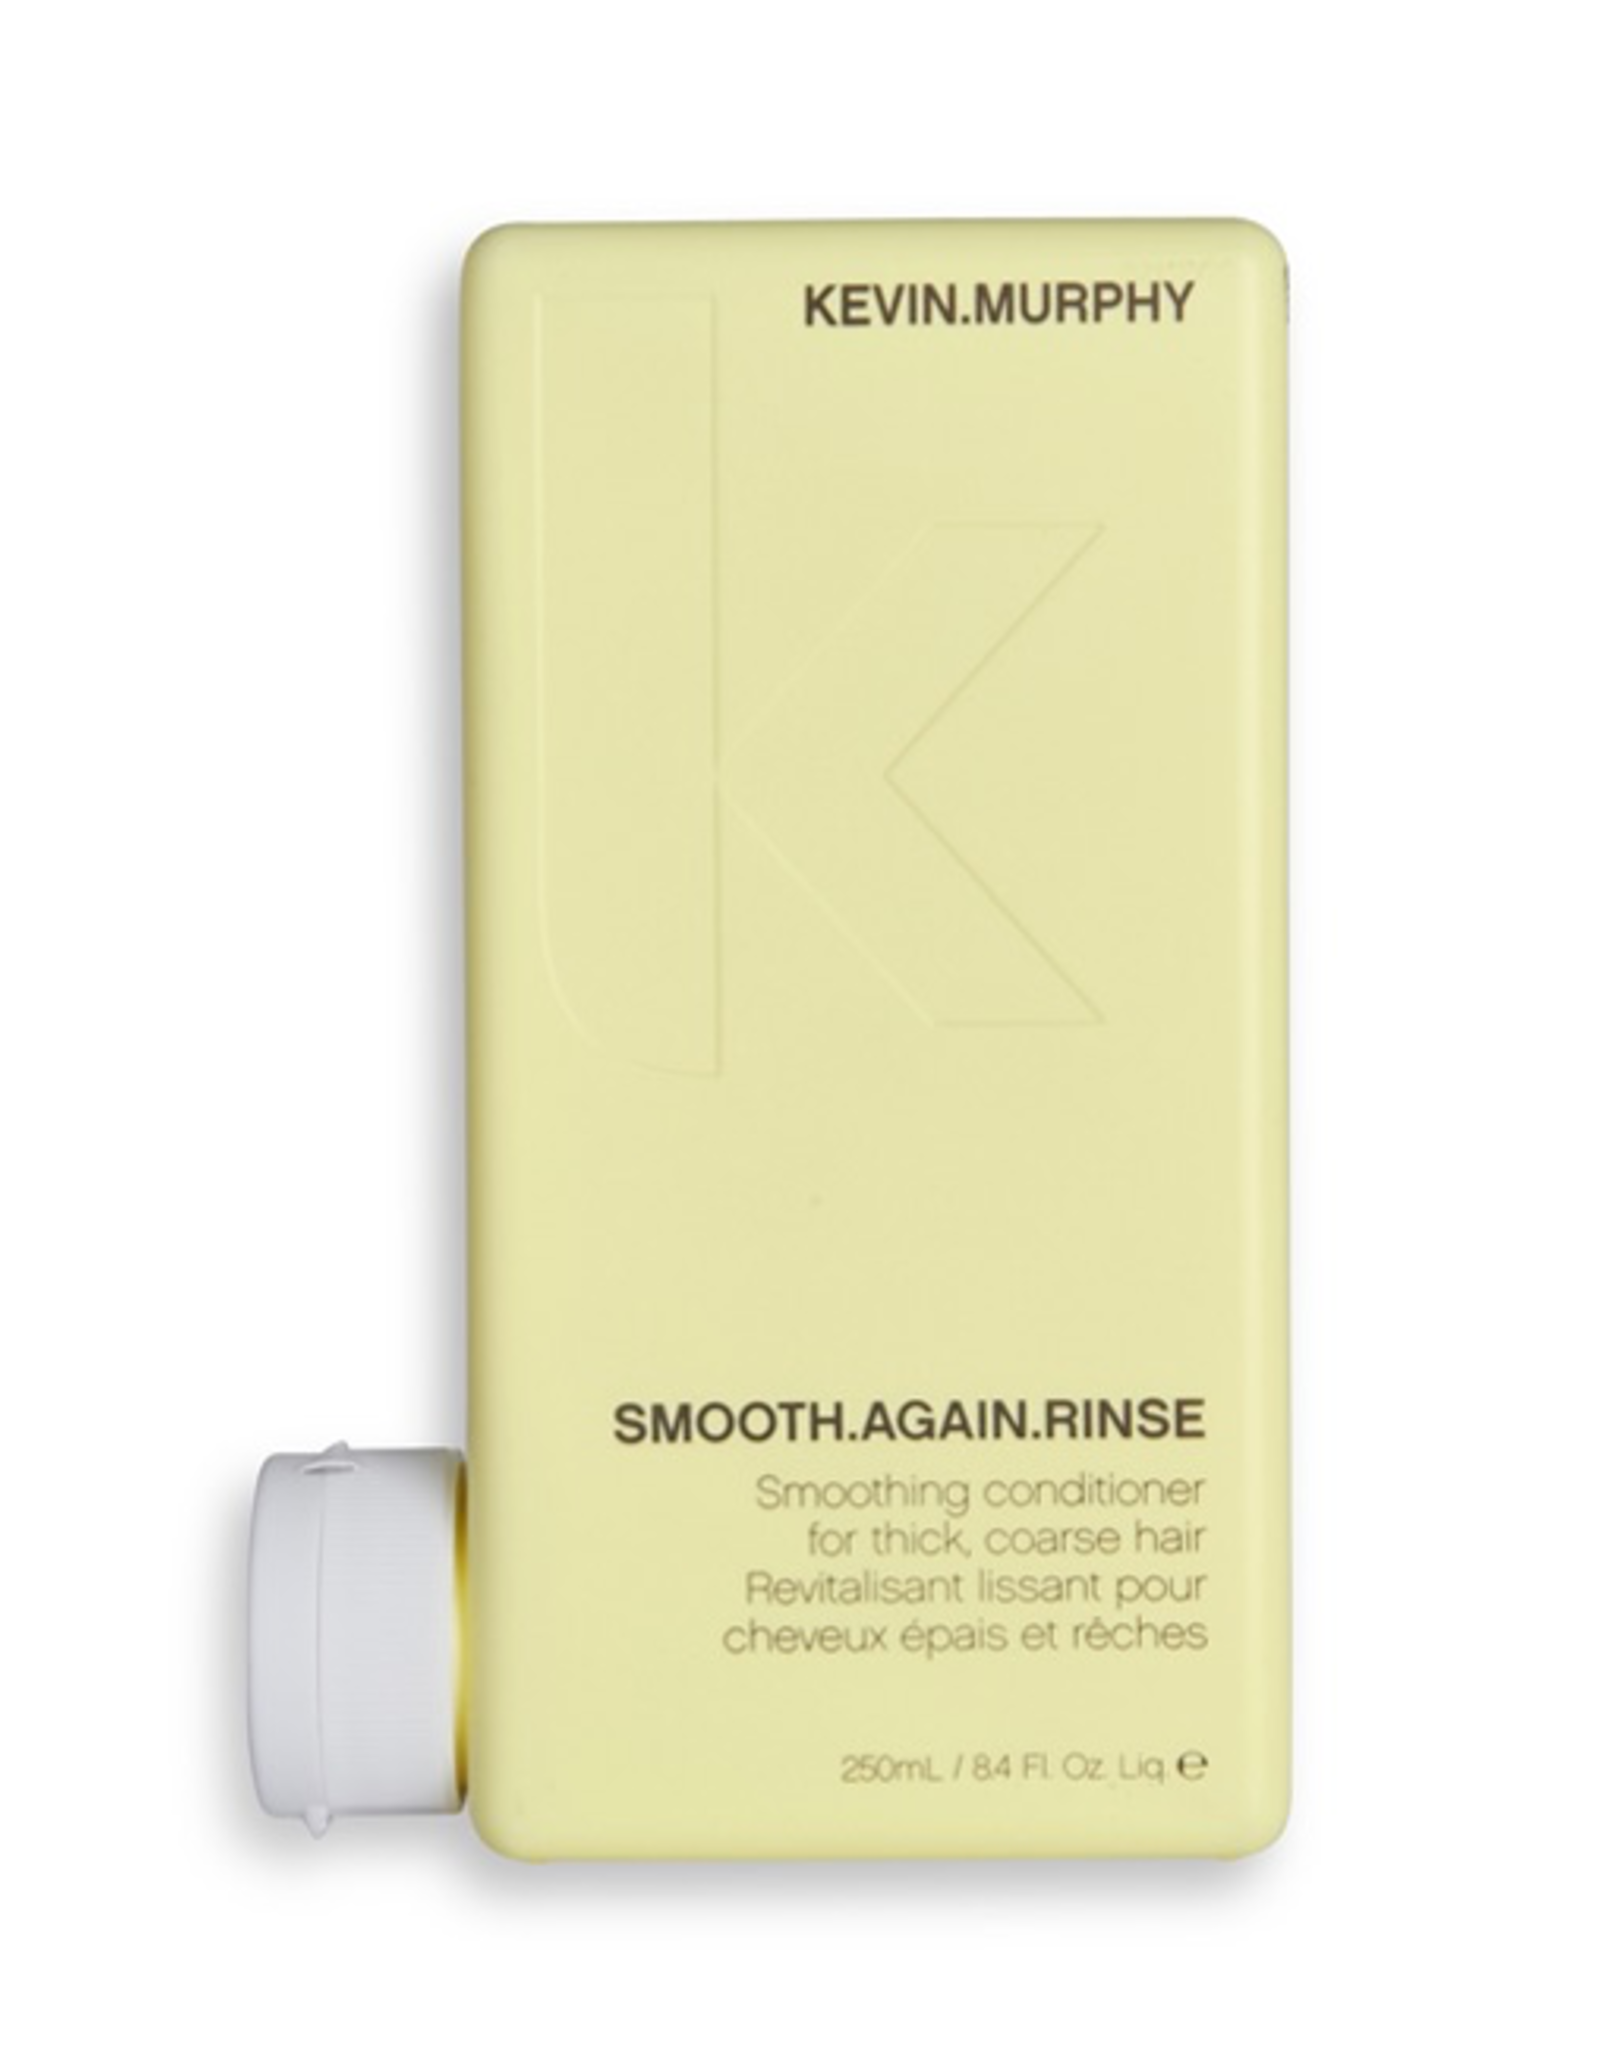 KEVIN.MURPHY Smooth.Again.Rinse (250 ml)